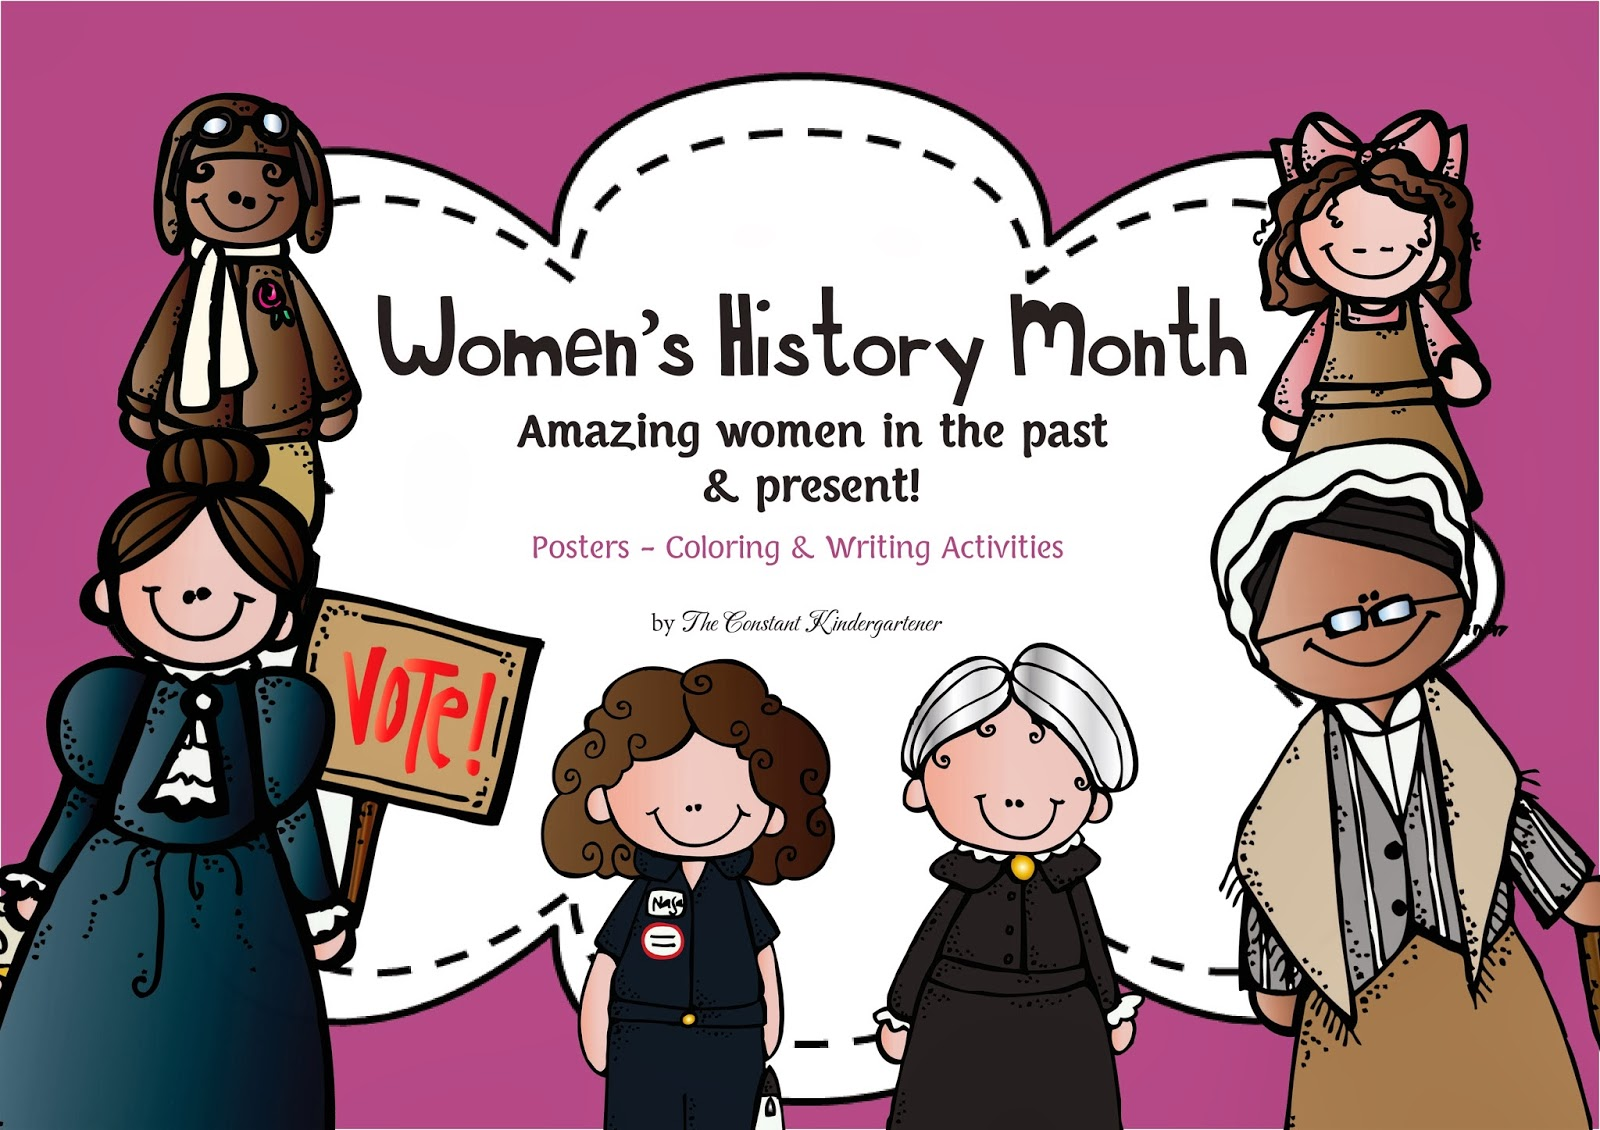 Free coloring pages black history month - Women S History Month Amazing Women Posters Coloring And Writing